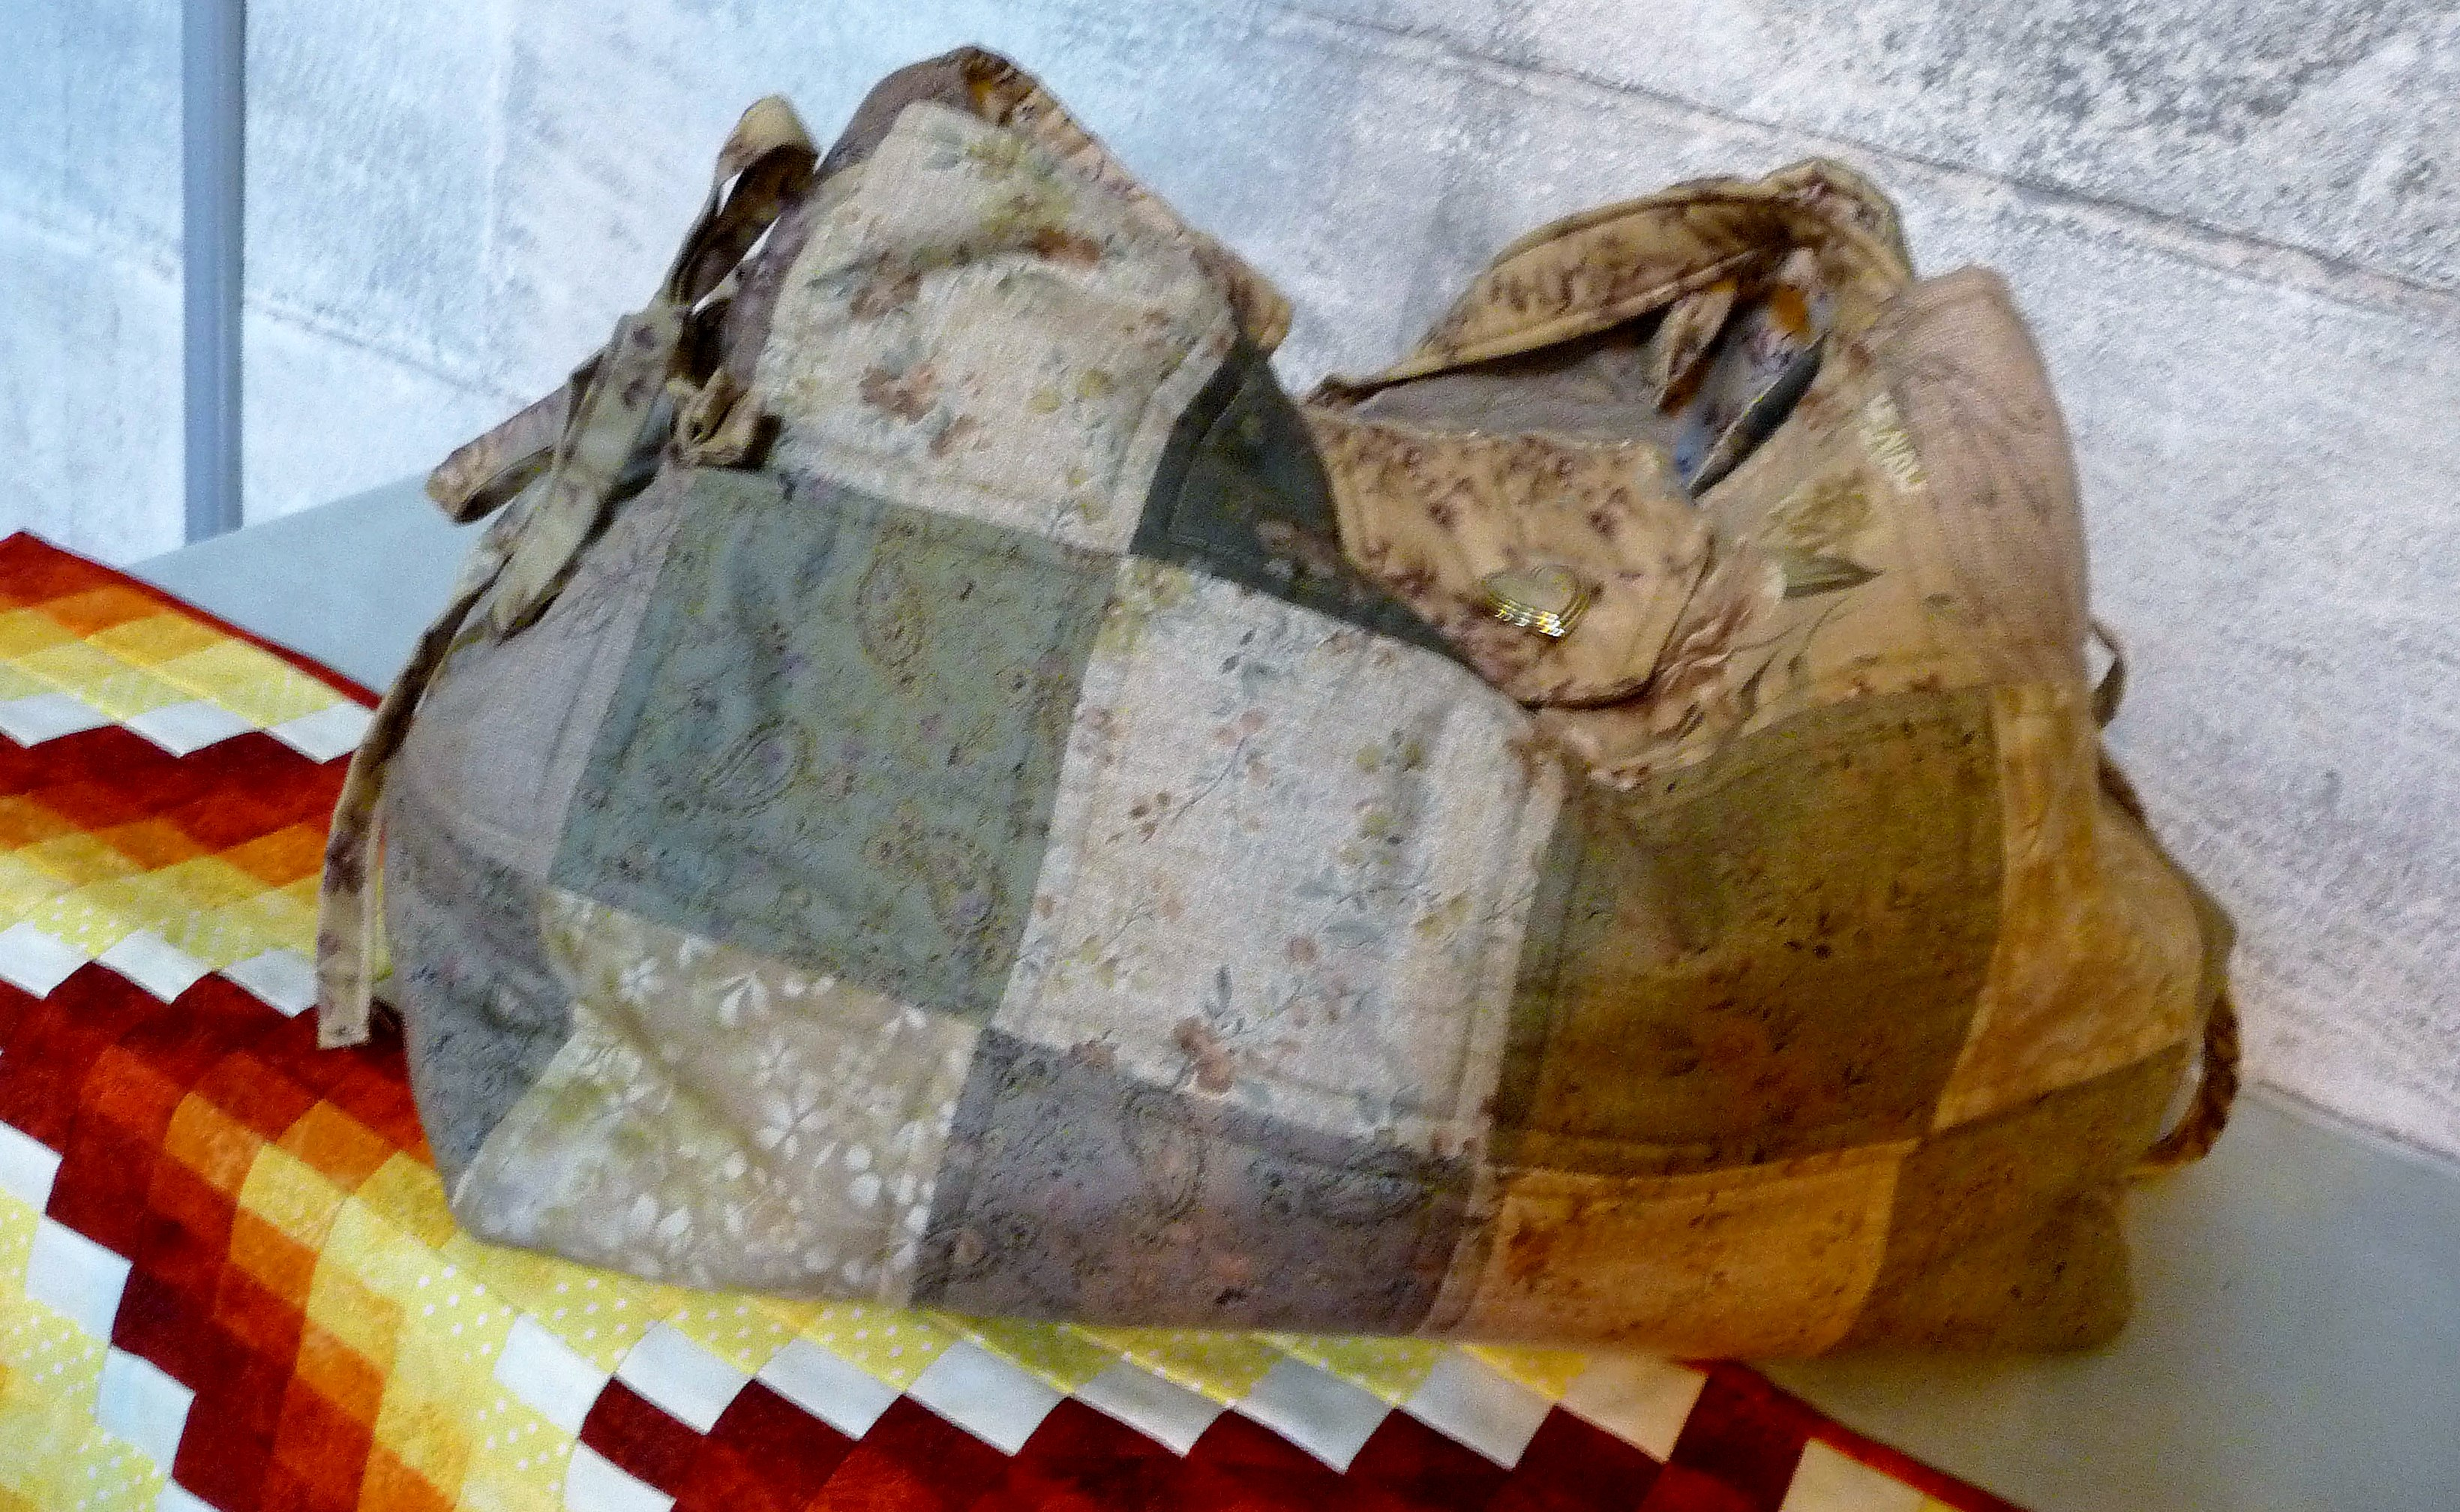 Patchwork bag made by Vivienne Glynn, Stitchin' Sisters Group